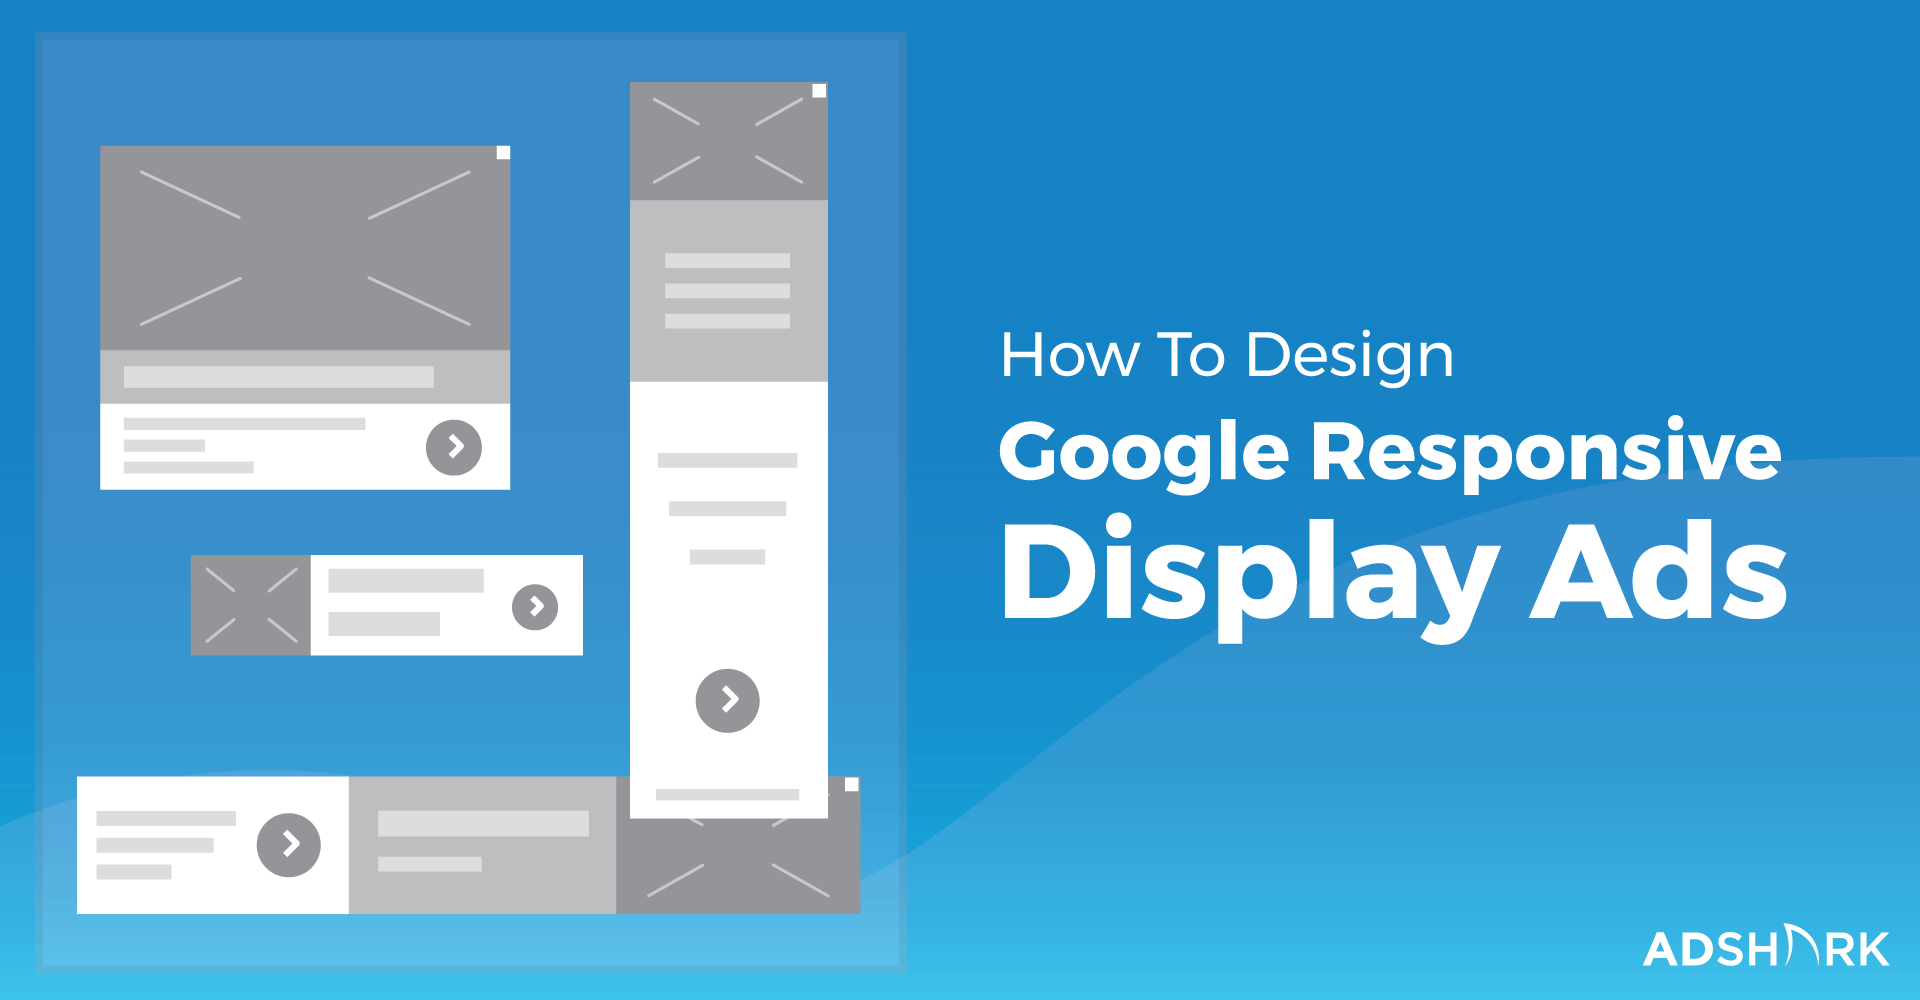 Elements of good display ad design